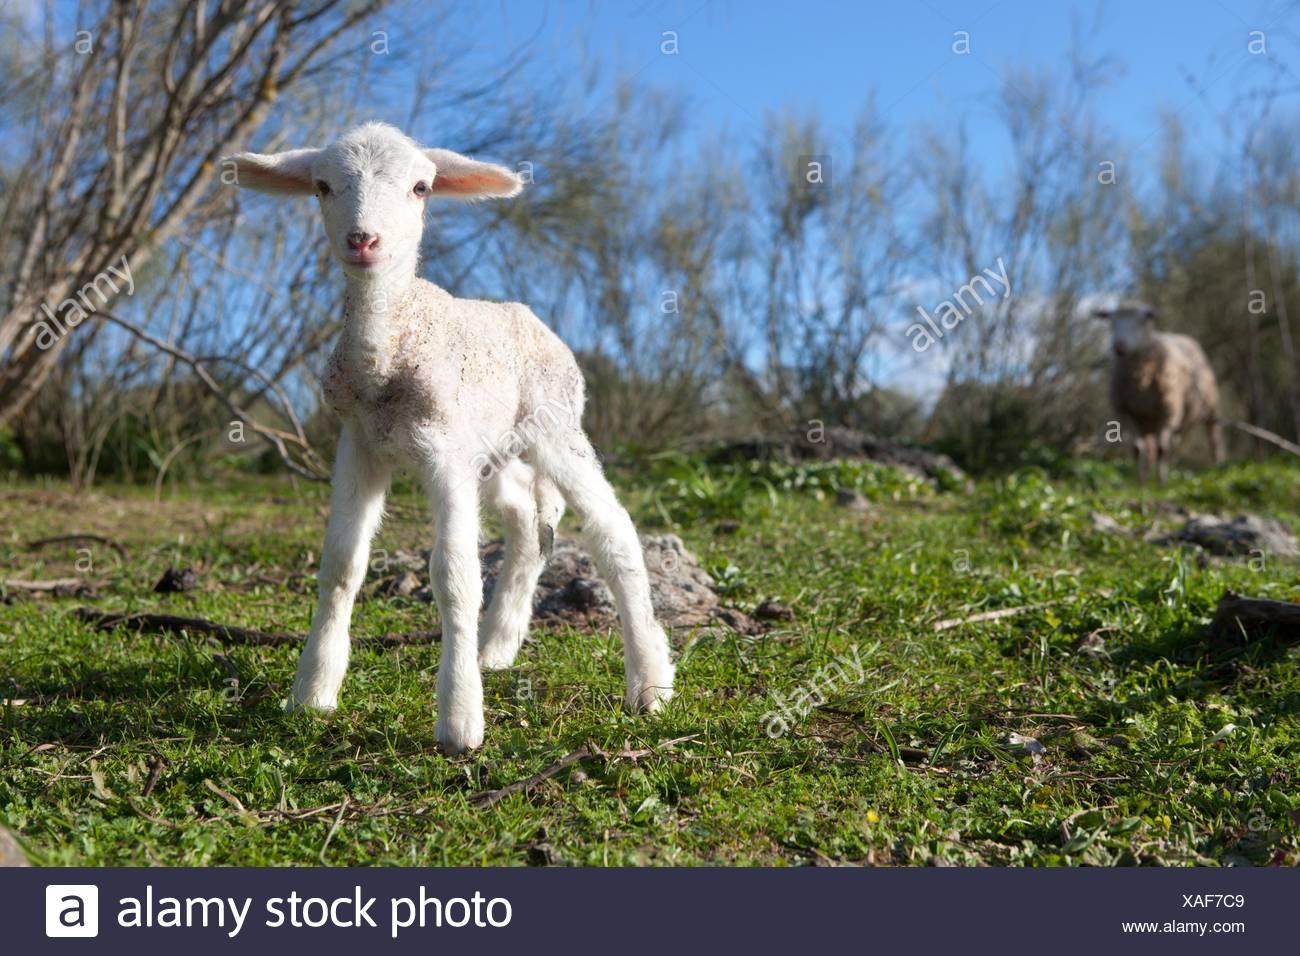 Baby lamb and her maternal watching mother, Extremadura, Spain. - Stock Image